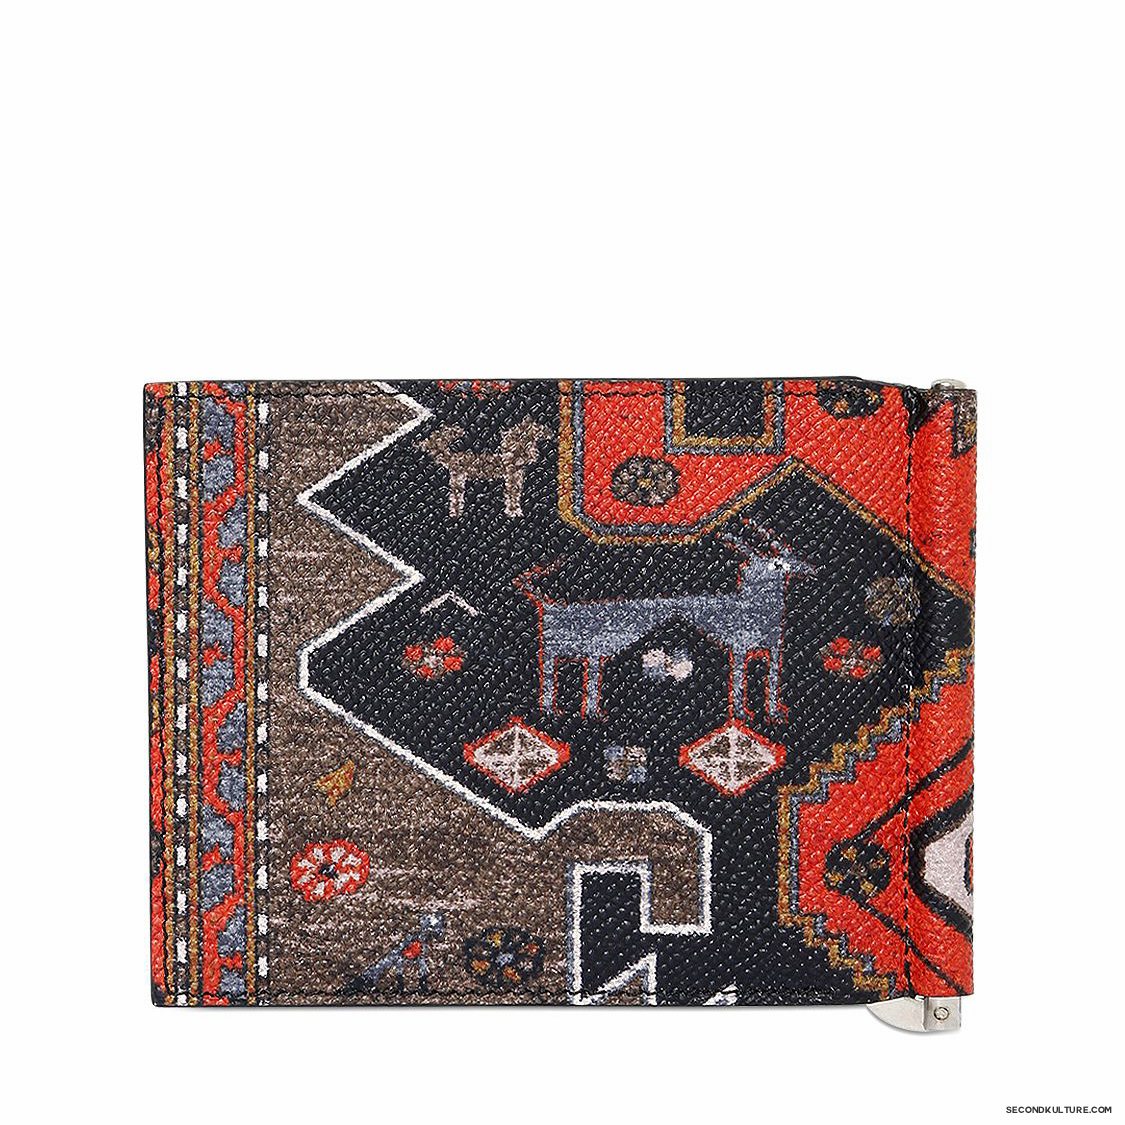 Givenchy-Native-American-Carpet-Print-Money-Clip-Leather-Wallet-Fall-Winter-2015-2